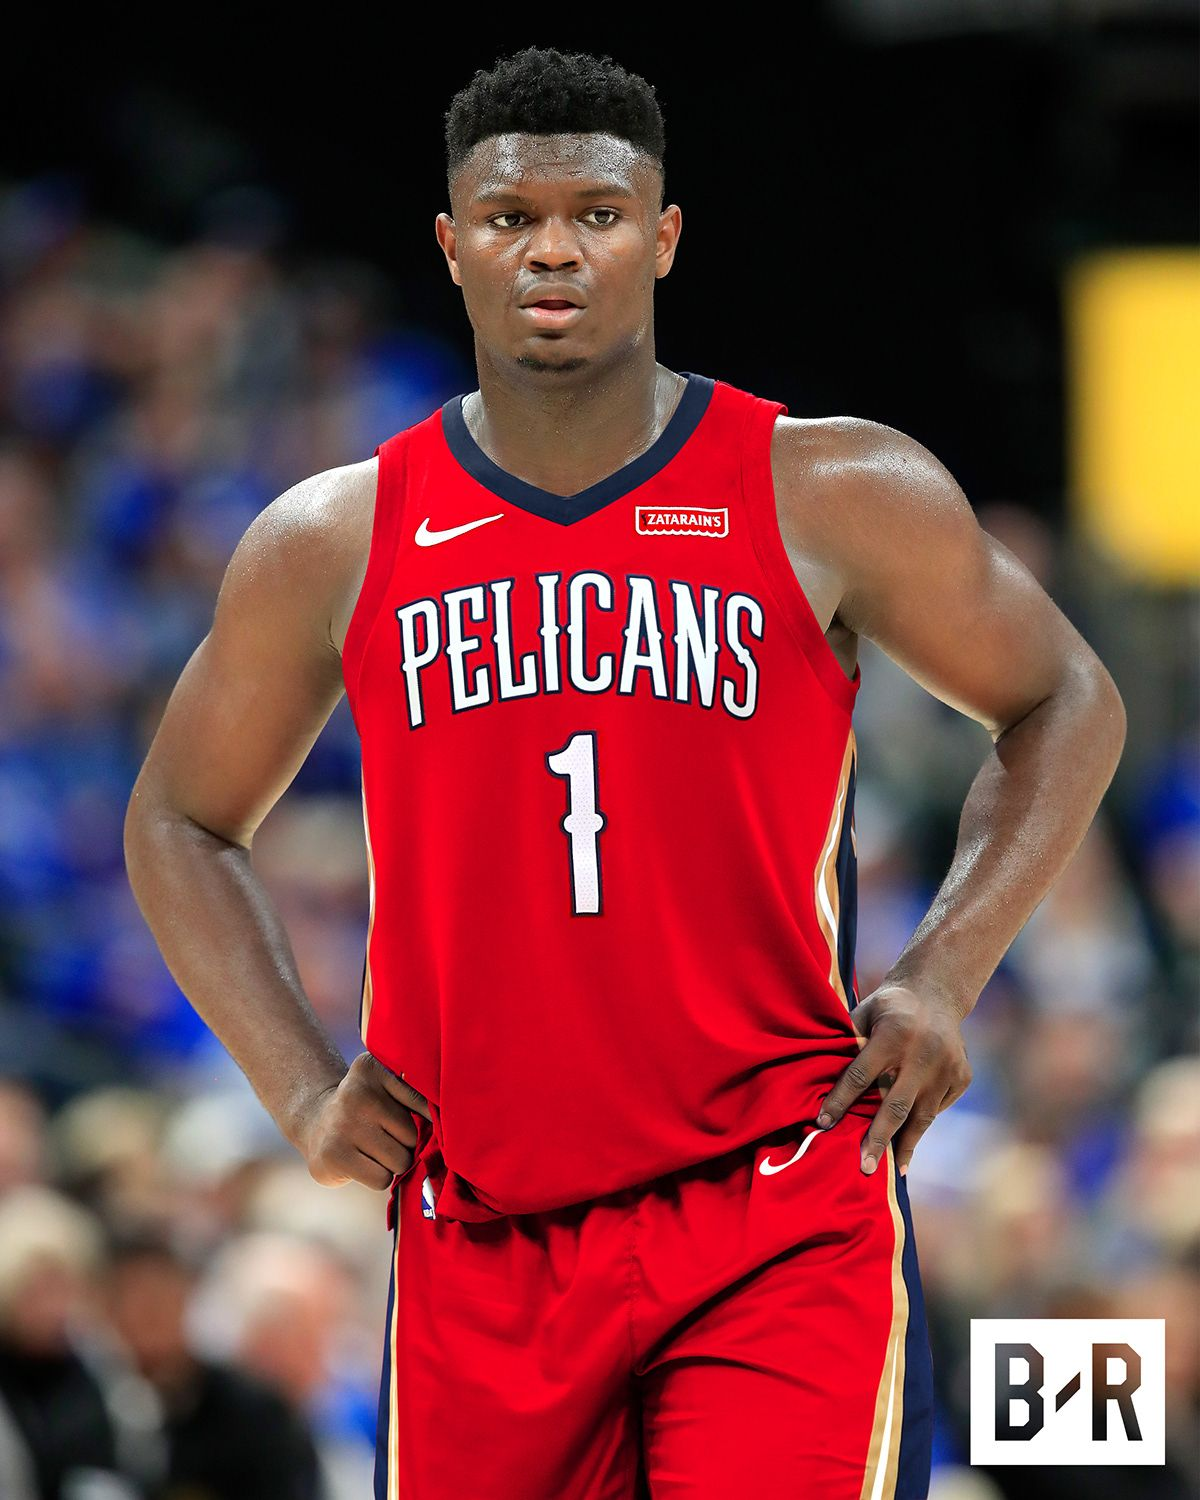 Zion Williamson Jersey Swaps for Bleacher Report on